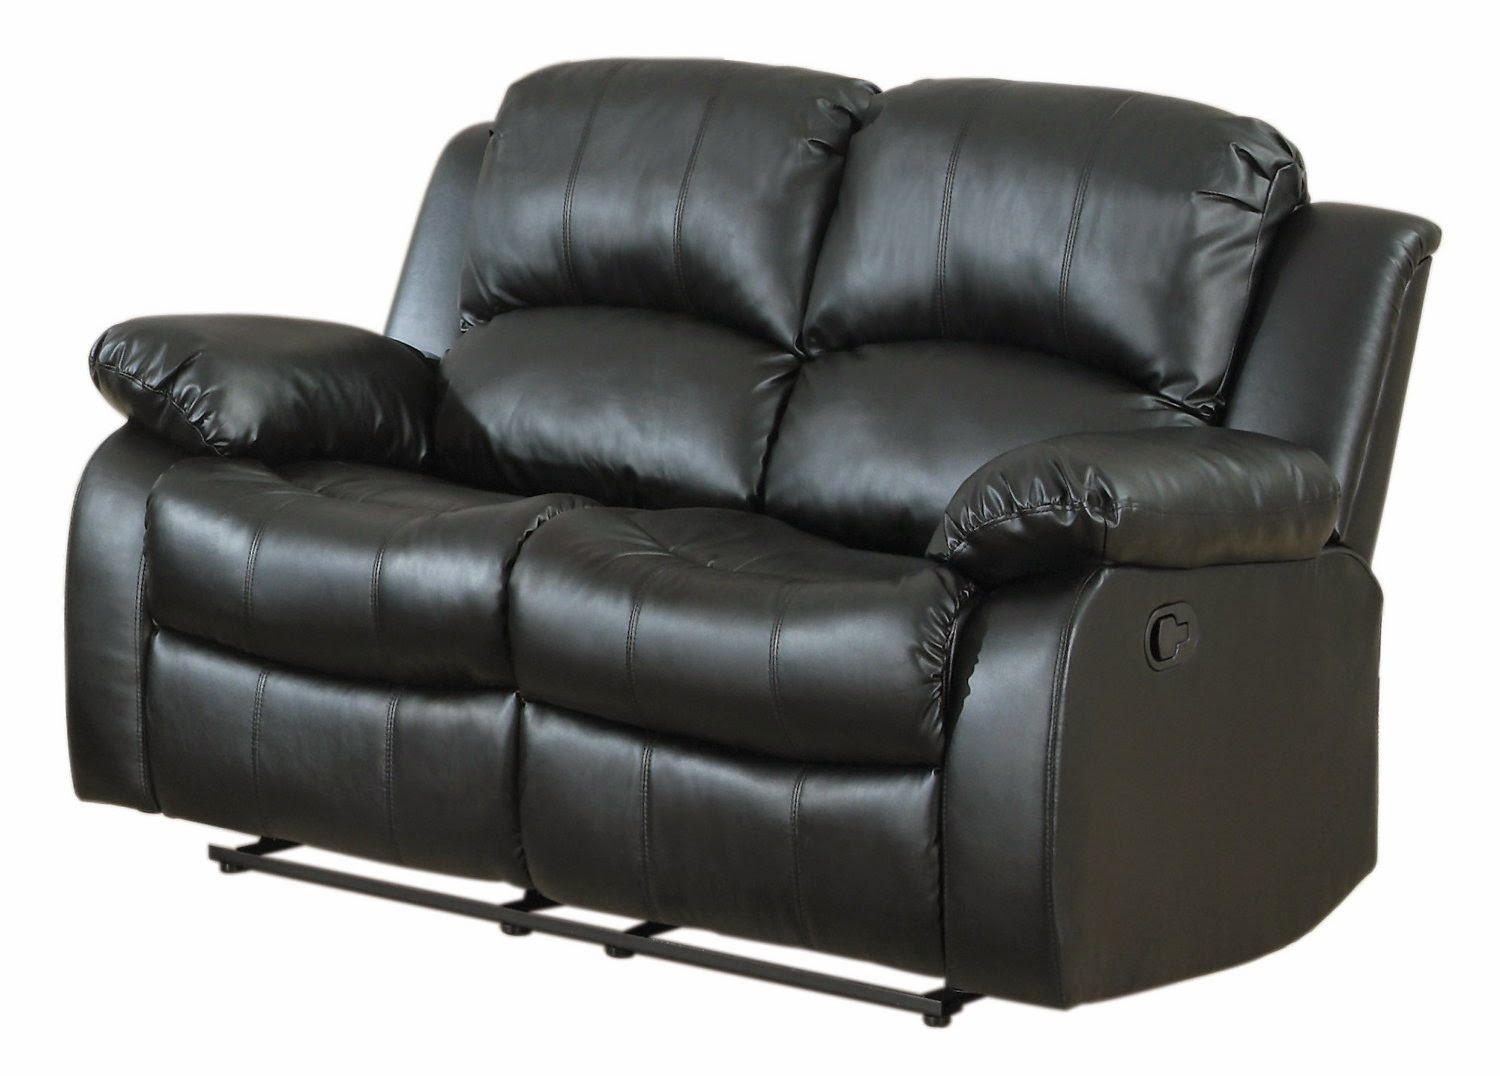 Leather Sofa Complaints Italian Bay Area The Best Reclining Reviews Recliner